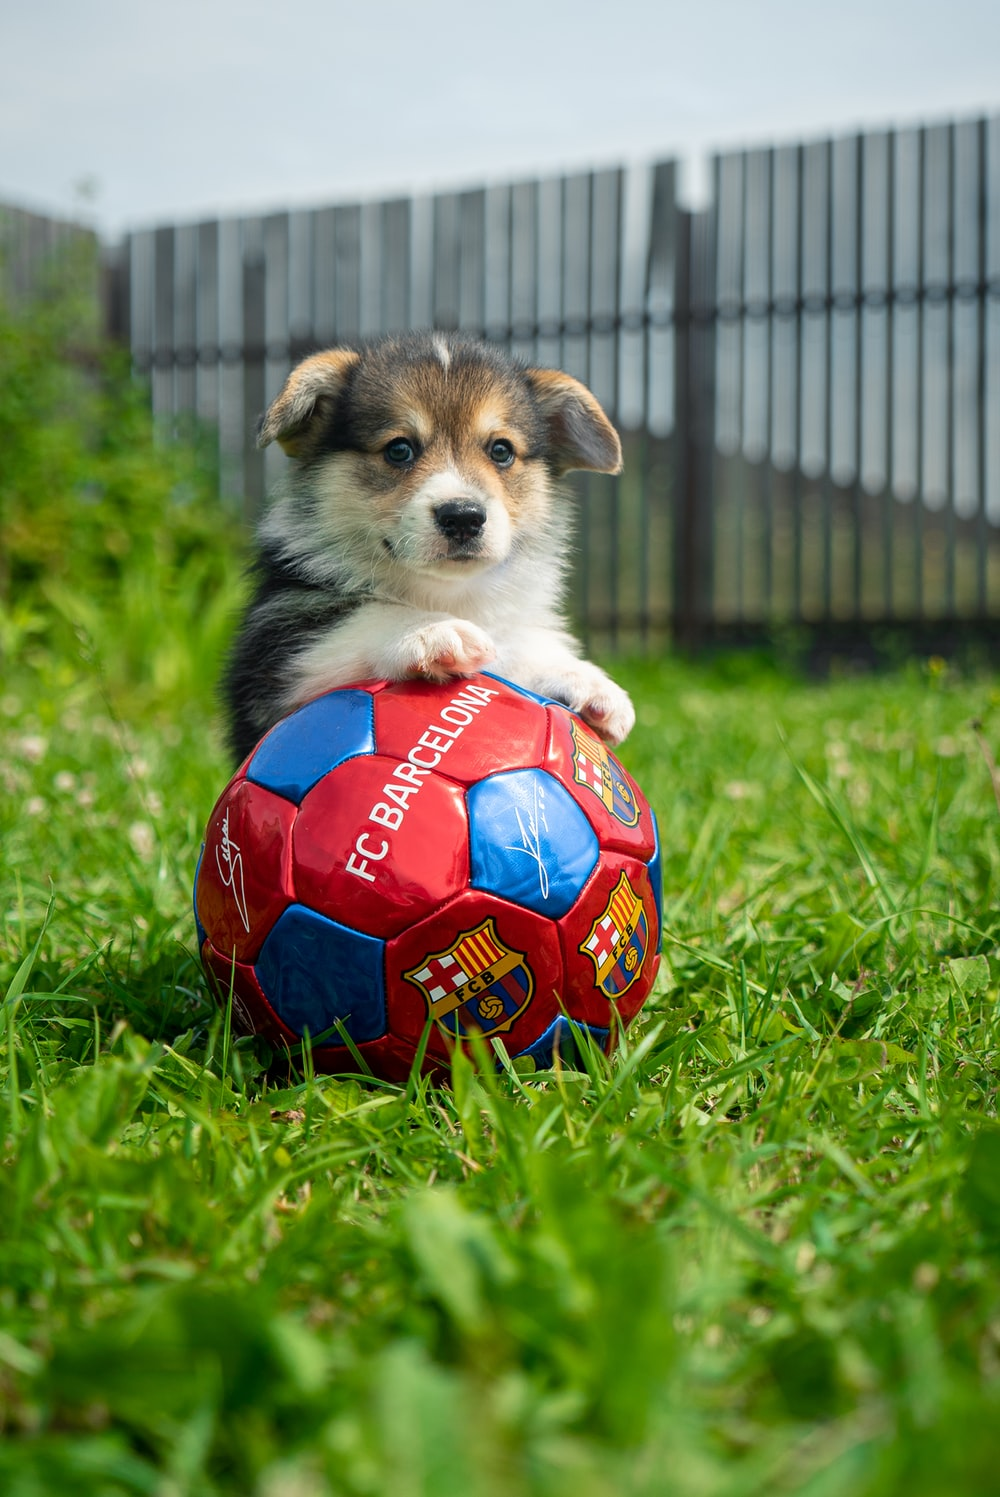 white and black puppy playing soccer ball on green grass field during daytime